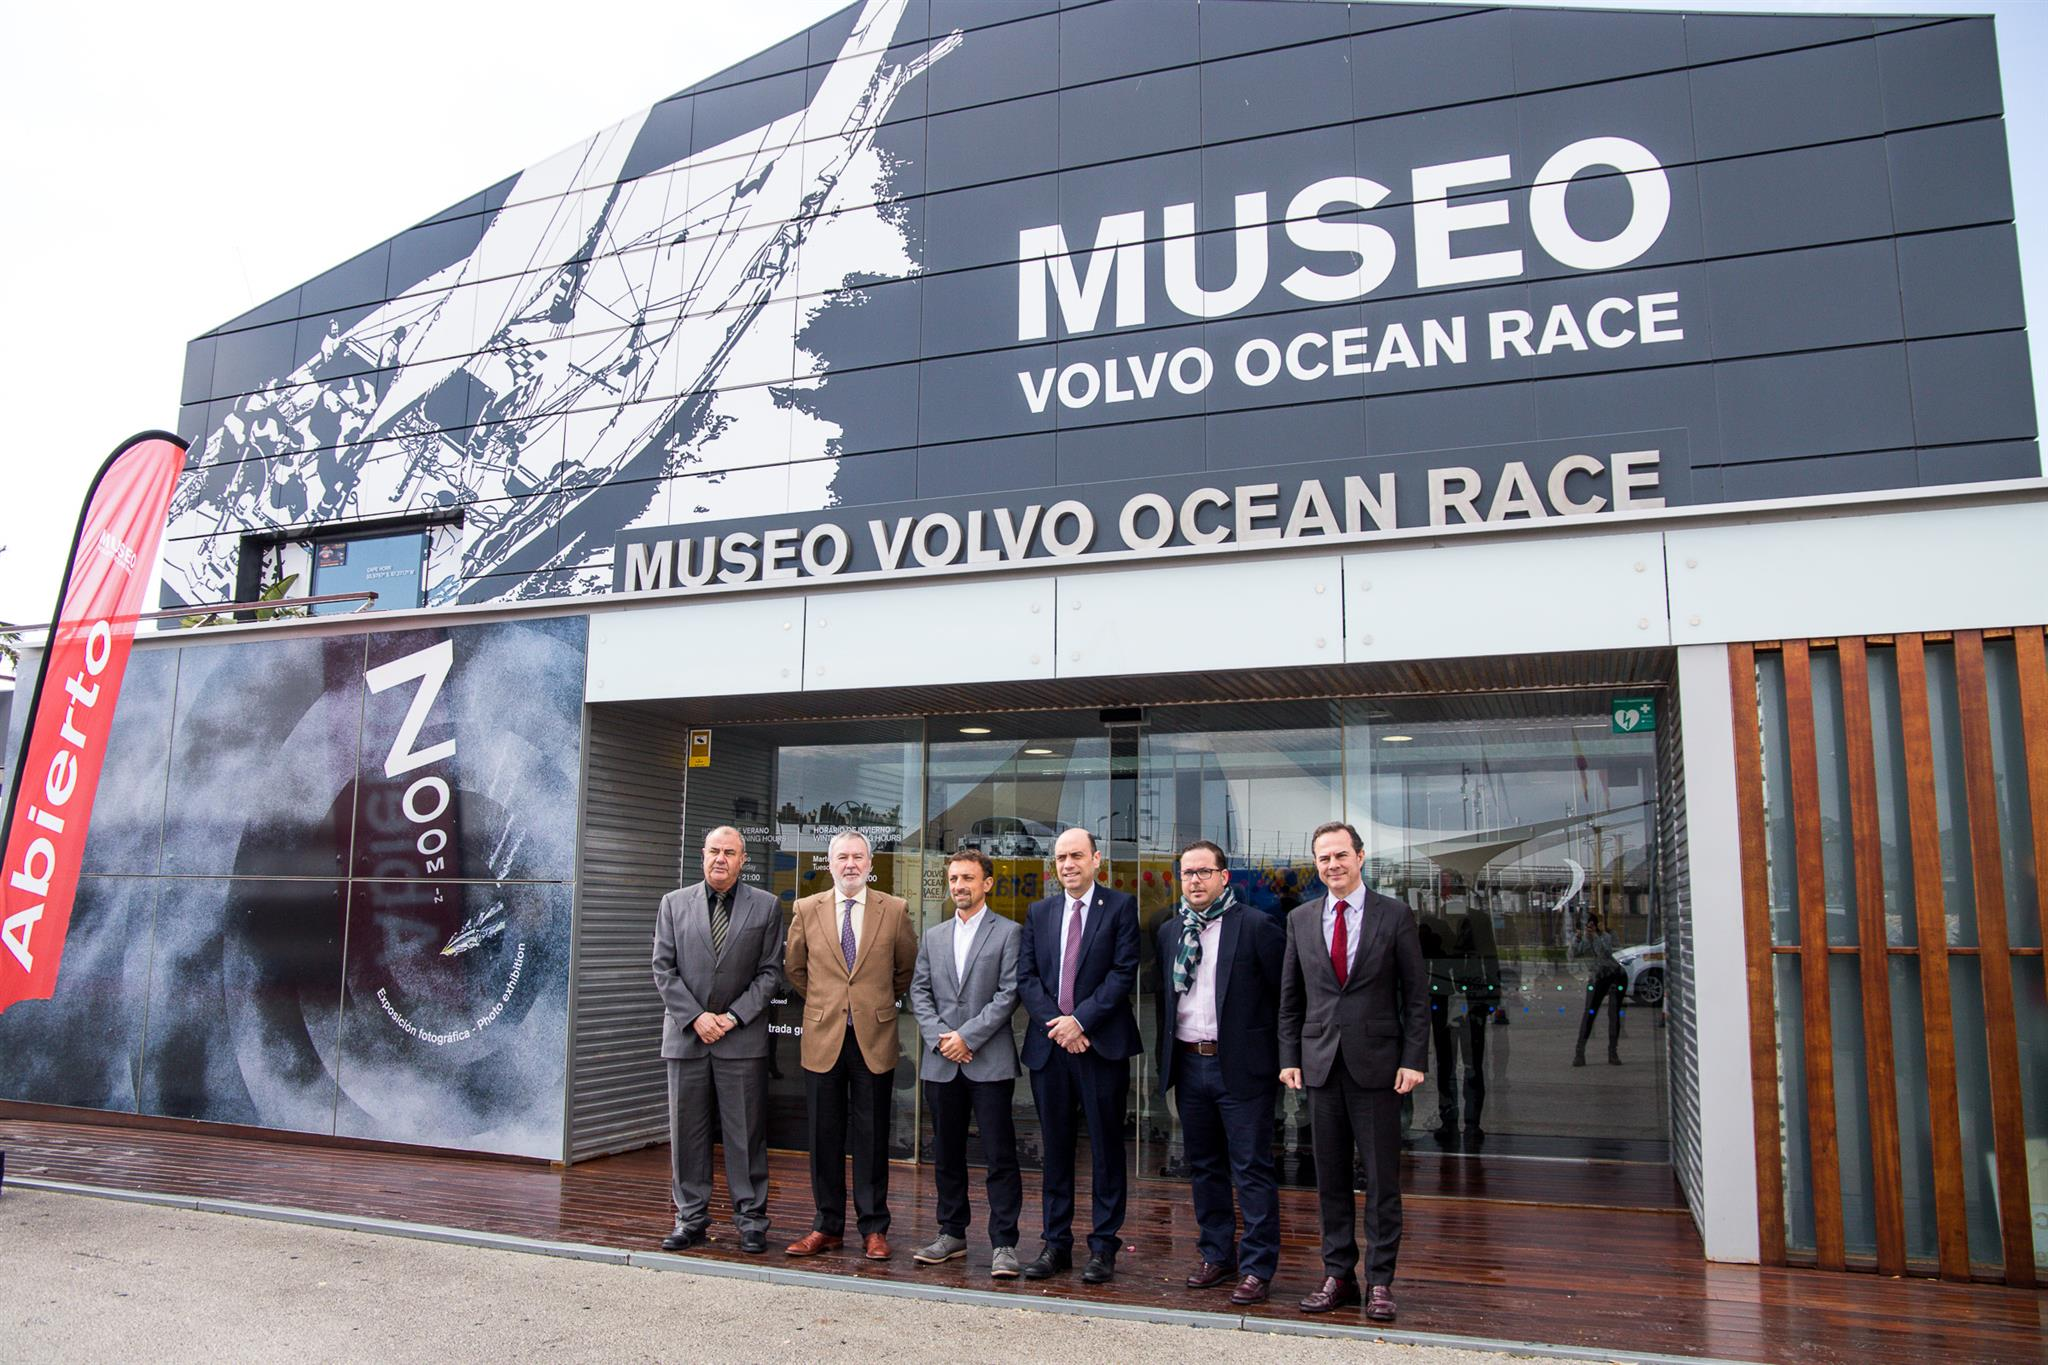 2017-18 Economic Impact press conference at the Volvo Ocean Race Museum. 08 March, 2018. Antonio Rodes, Generalitat Valenciana, Juan Antonio Gisbert, President of the Port Authority of Alicante, Antonio Bolaños, Managing Director Volvo Ocean Race, Gabriel Echávarri, Major of Alicante, Agustín Almodóbar, PP Senator for Alicante and Tourism Spokesperson, Carlos Castillo, Diputación de Alicante. - Imagem:Marina García/Volvo Ocean Race